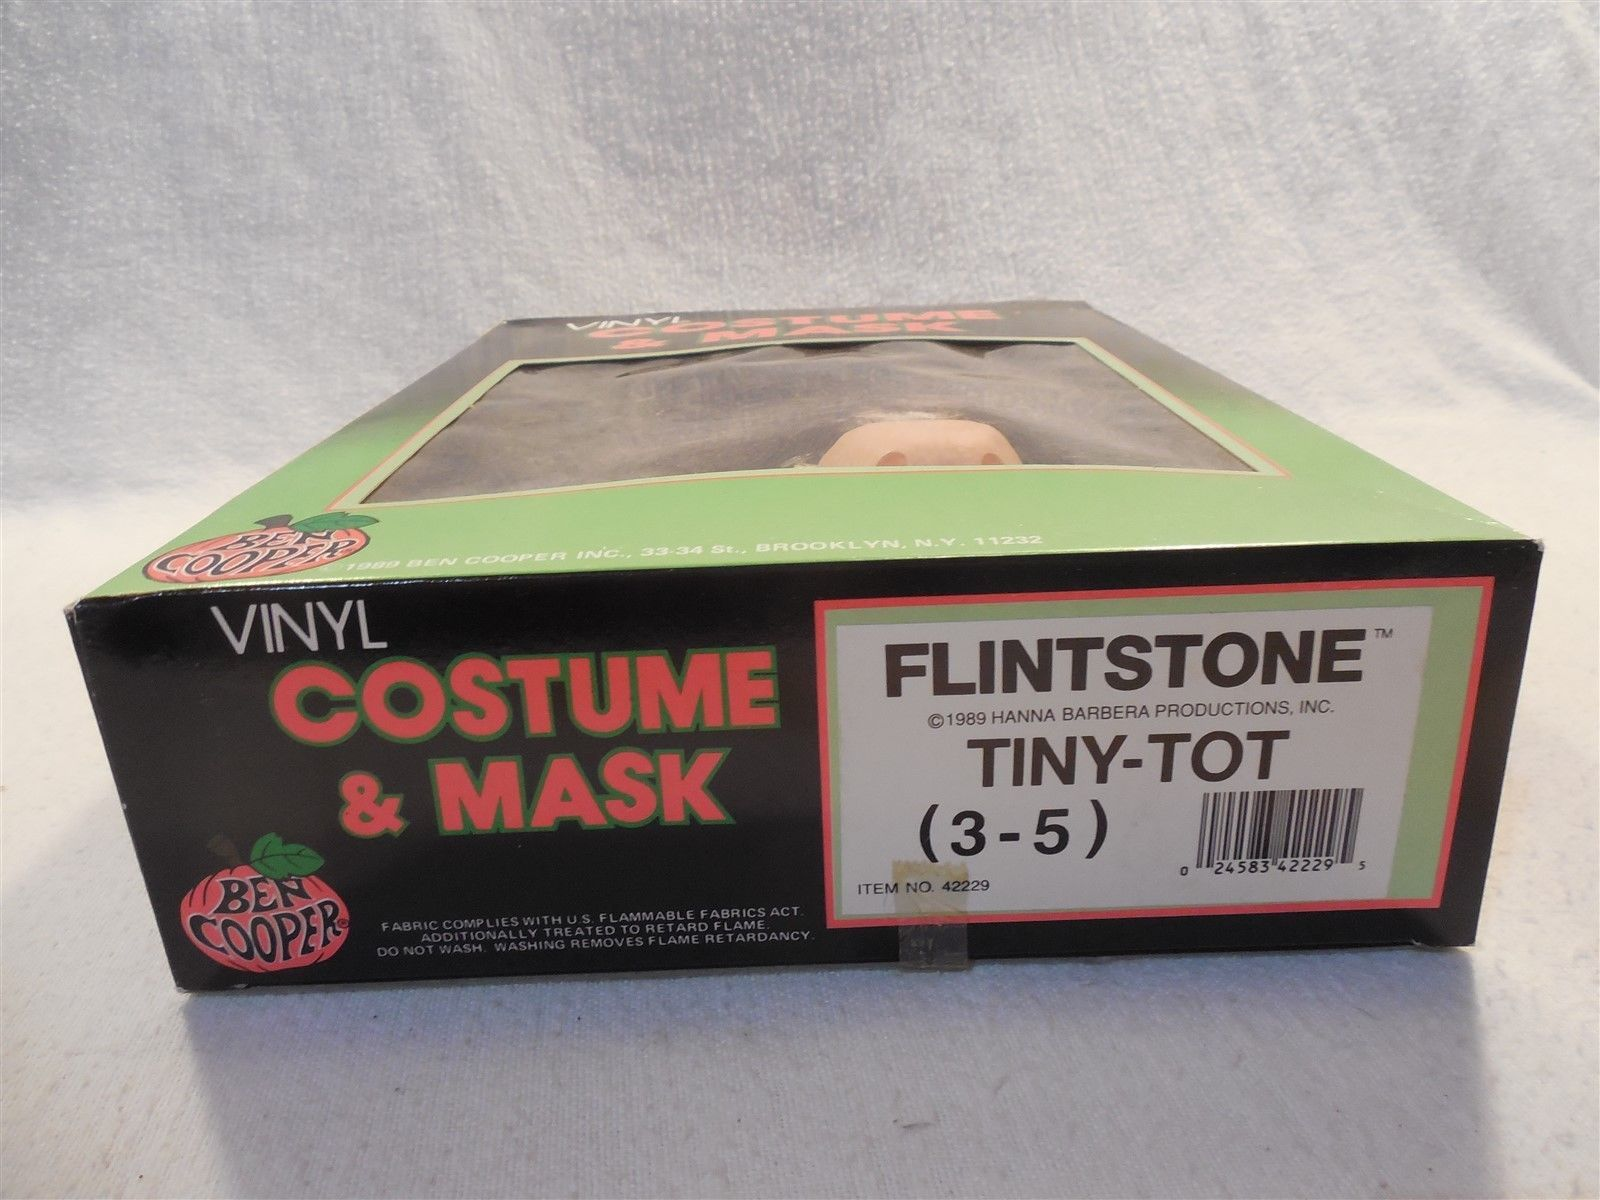 Flintstones 1989 Ben Cooper Fred Flintstone Halloween Costume No 42229 Tiny-Tot